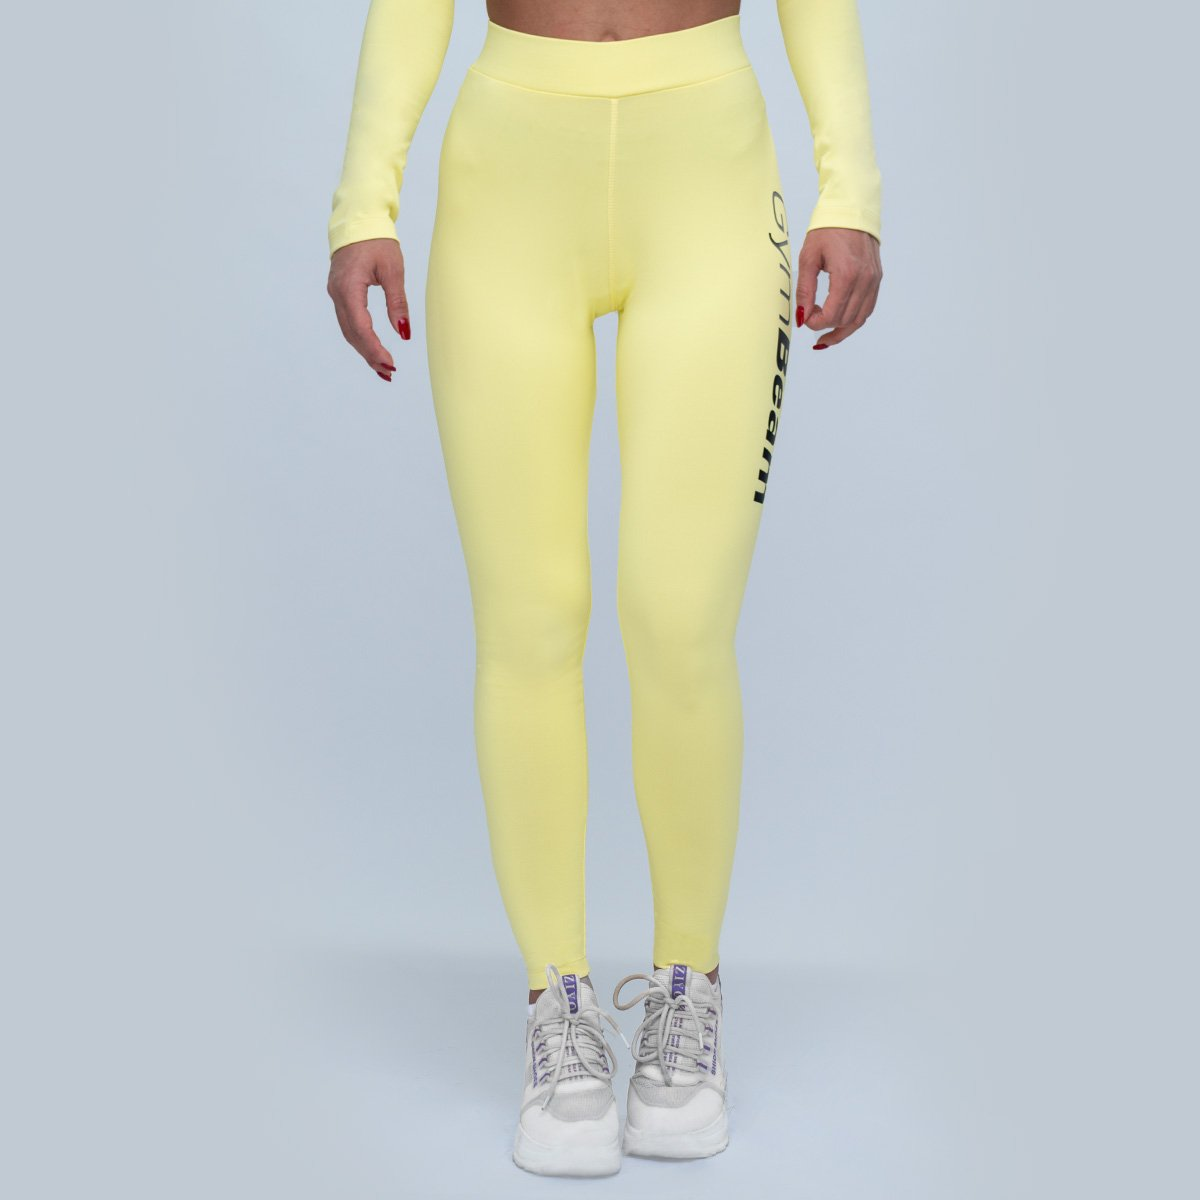 GymBeam Women s Leggings Advanced Lemon  L